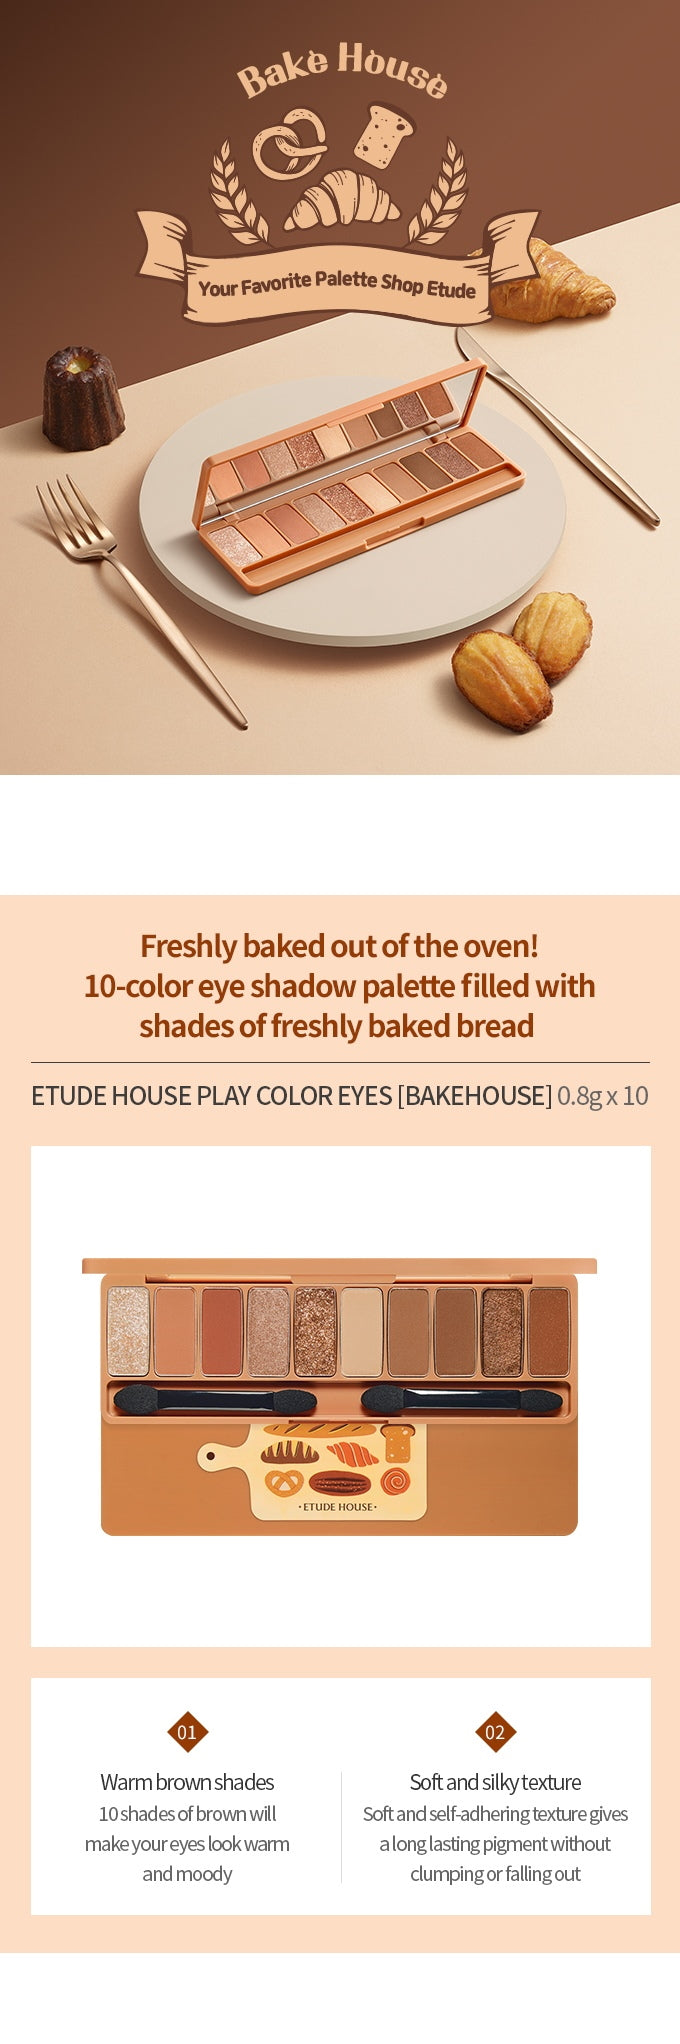 Etude House Play Color Eyes #BAKEHOUSE